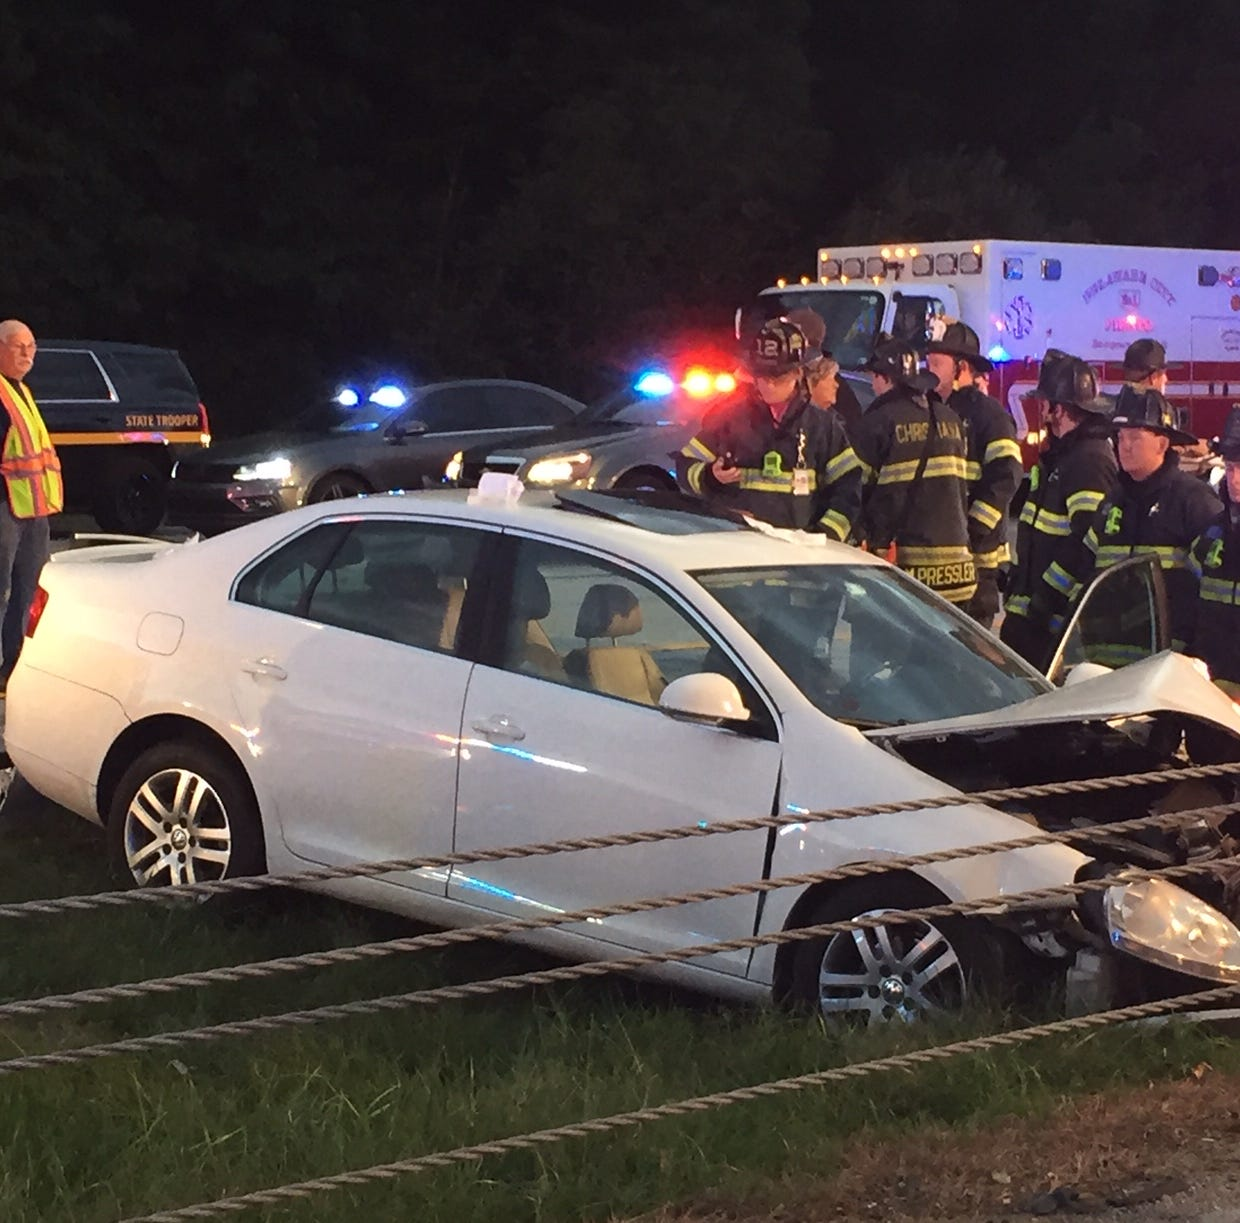 Del. 1 north closed after crash